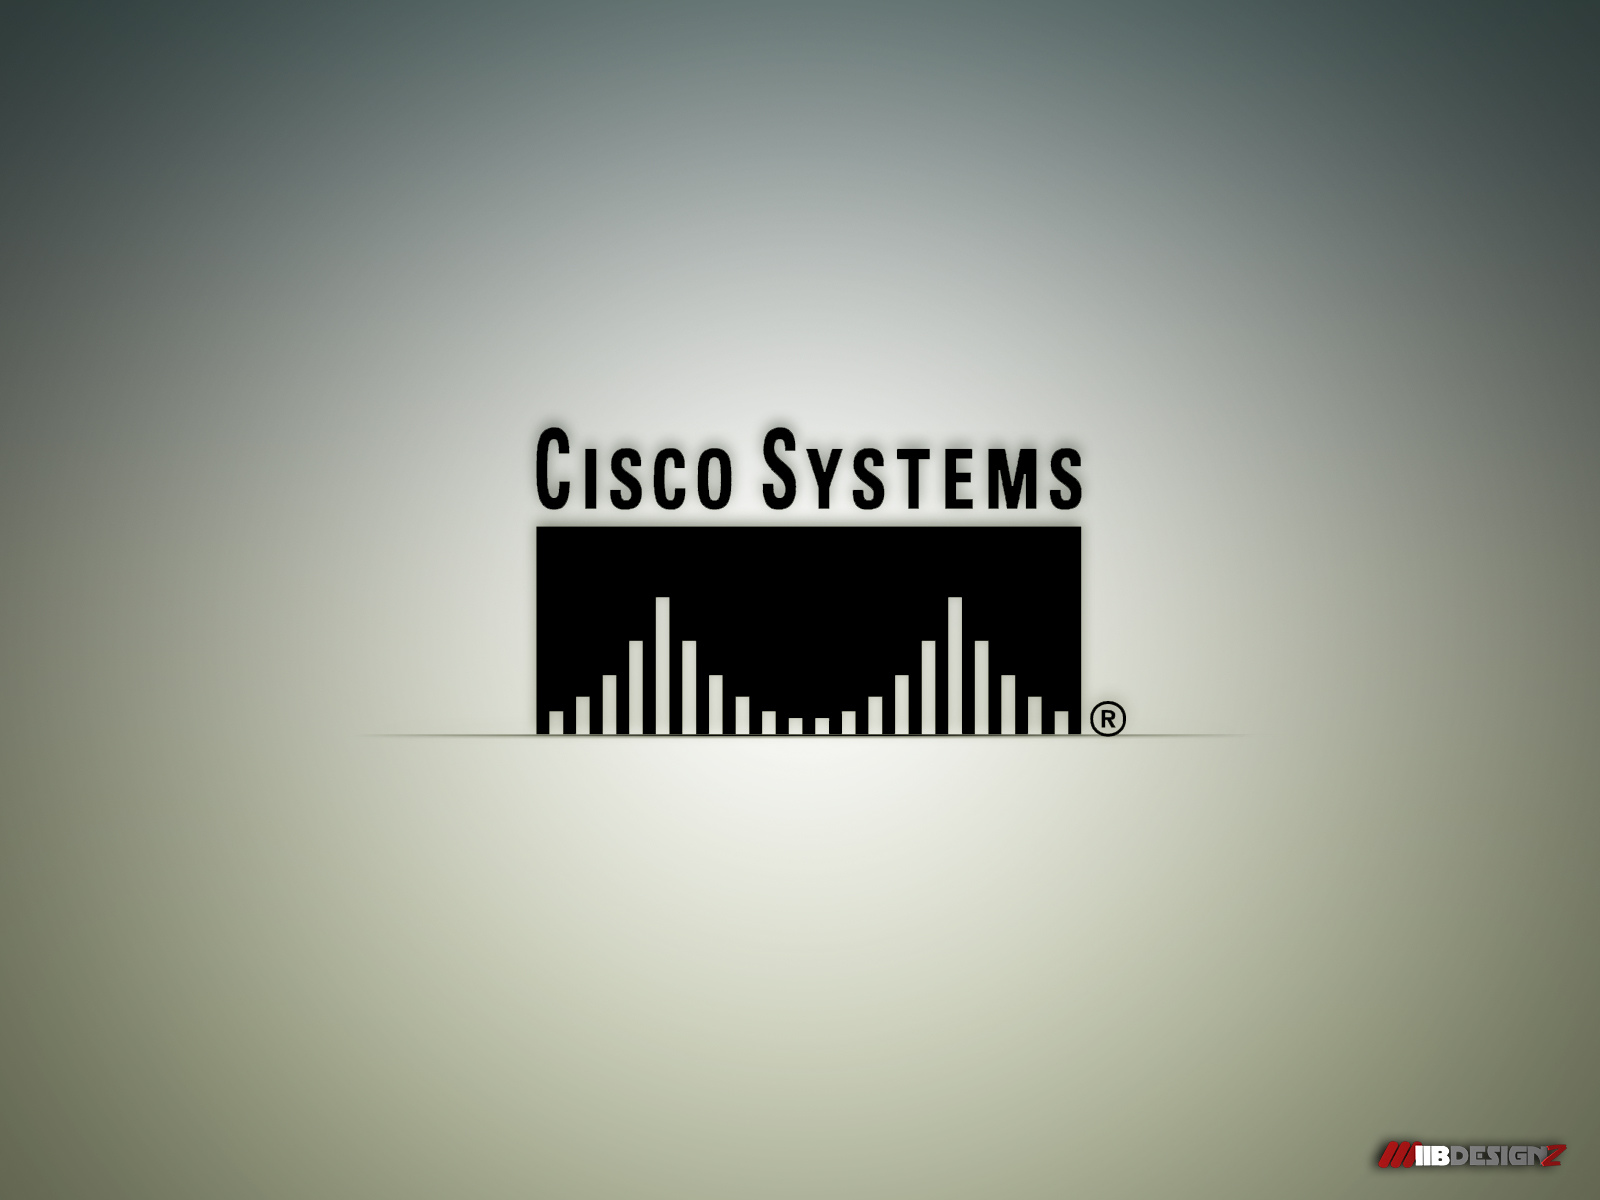 Animated Lion Wallpaper Cisco Systems Wallpapers Cisco Systems Stock Photos